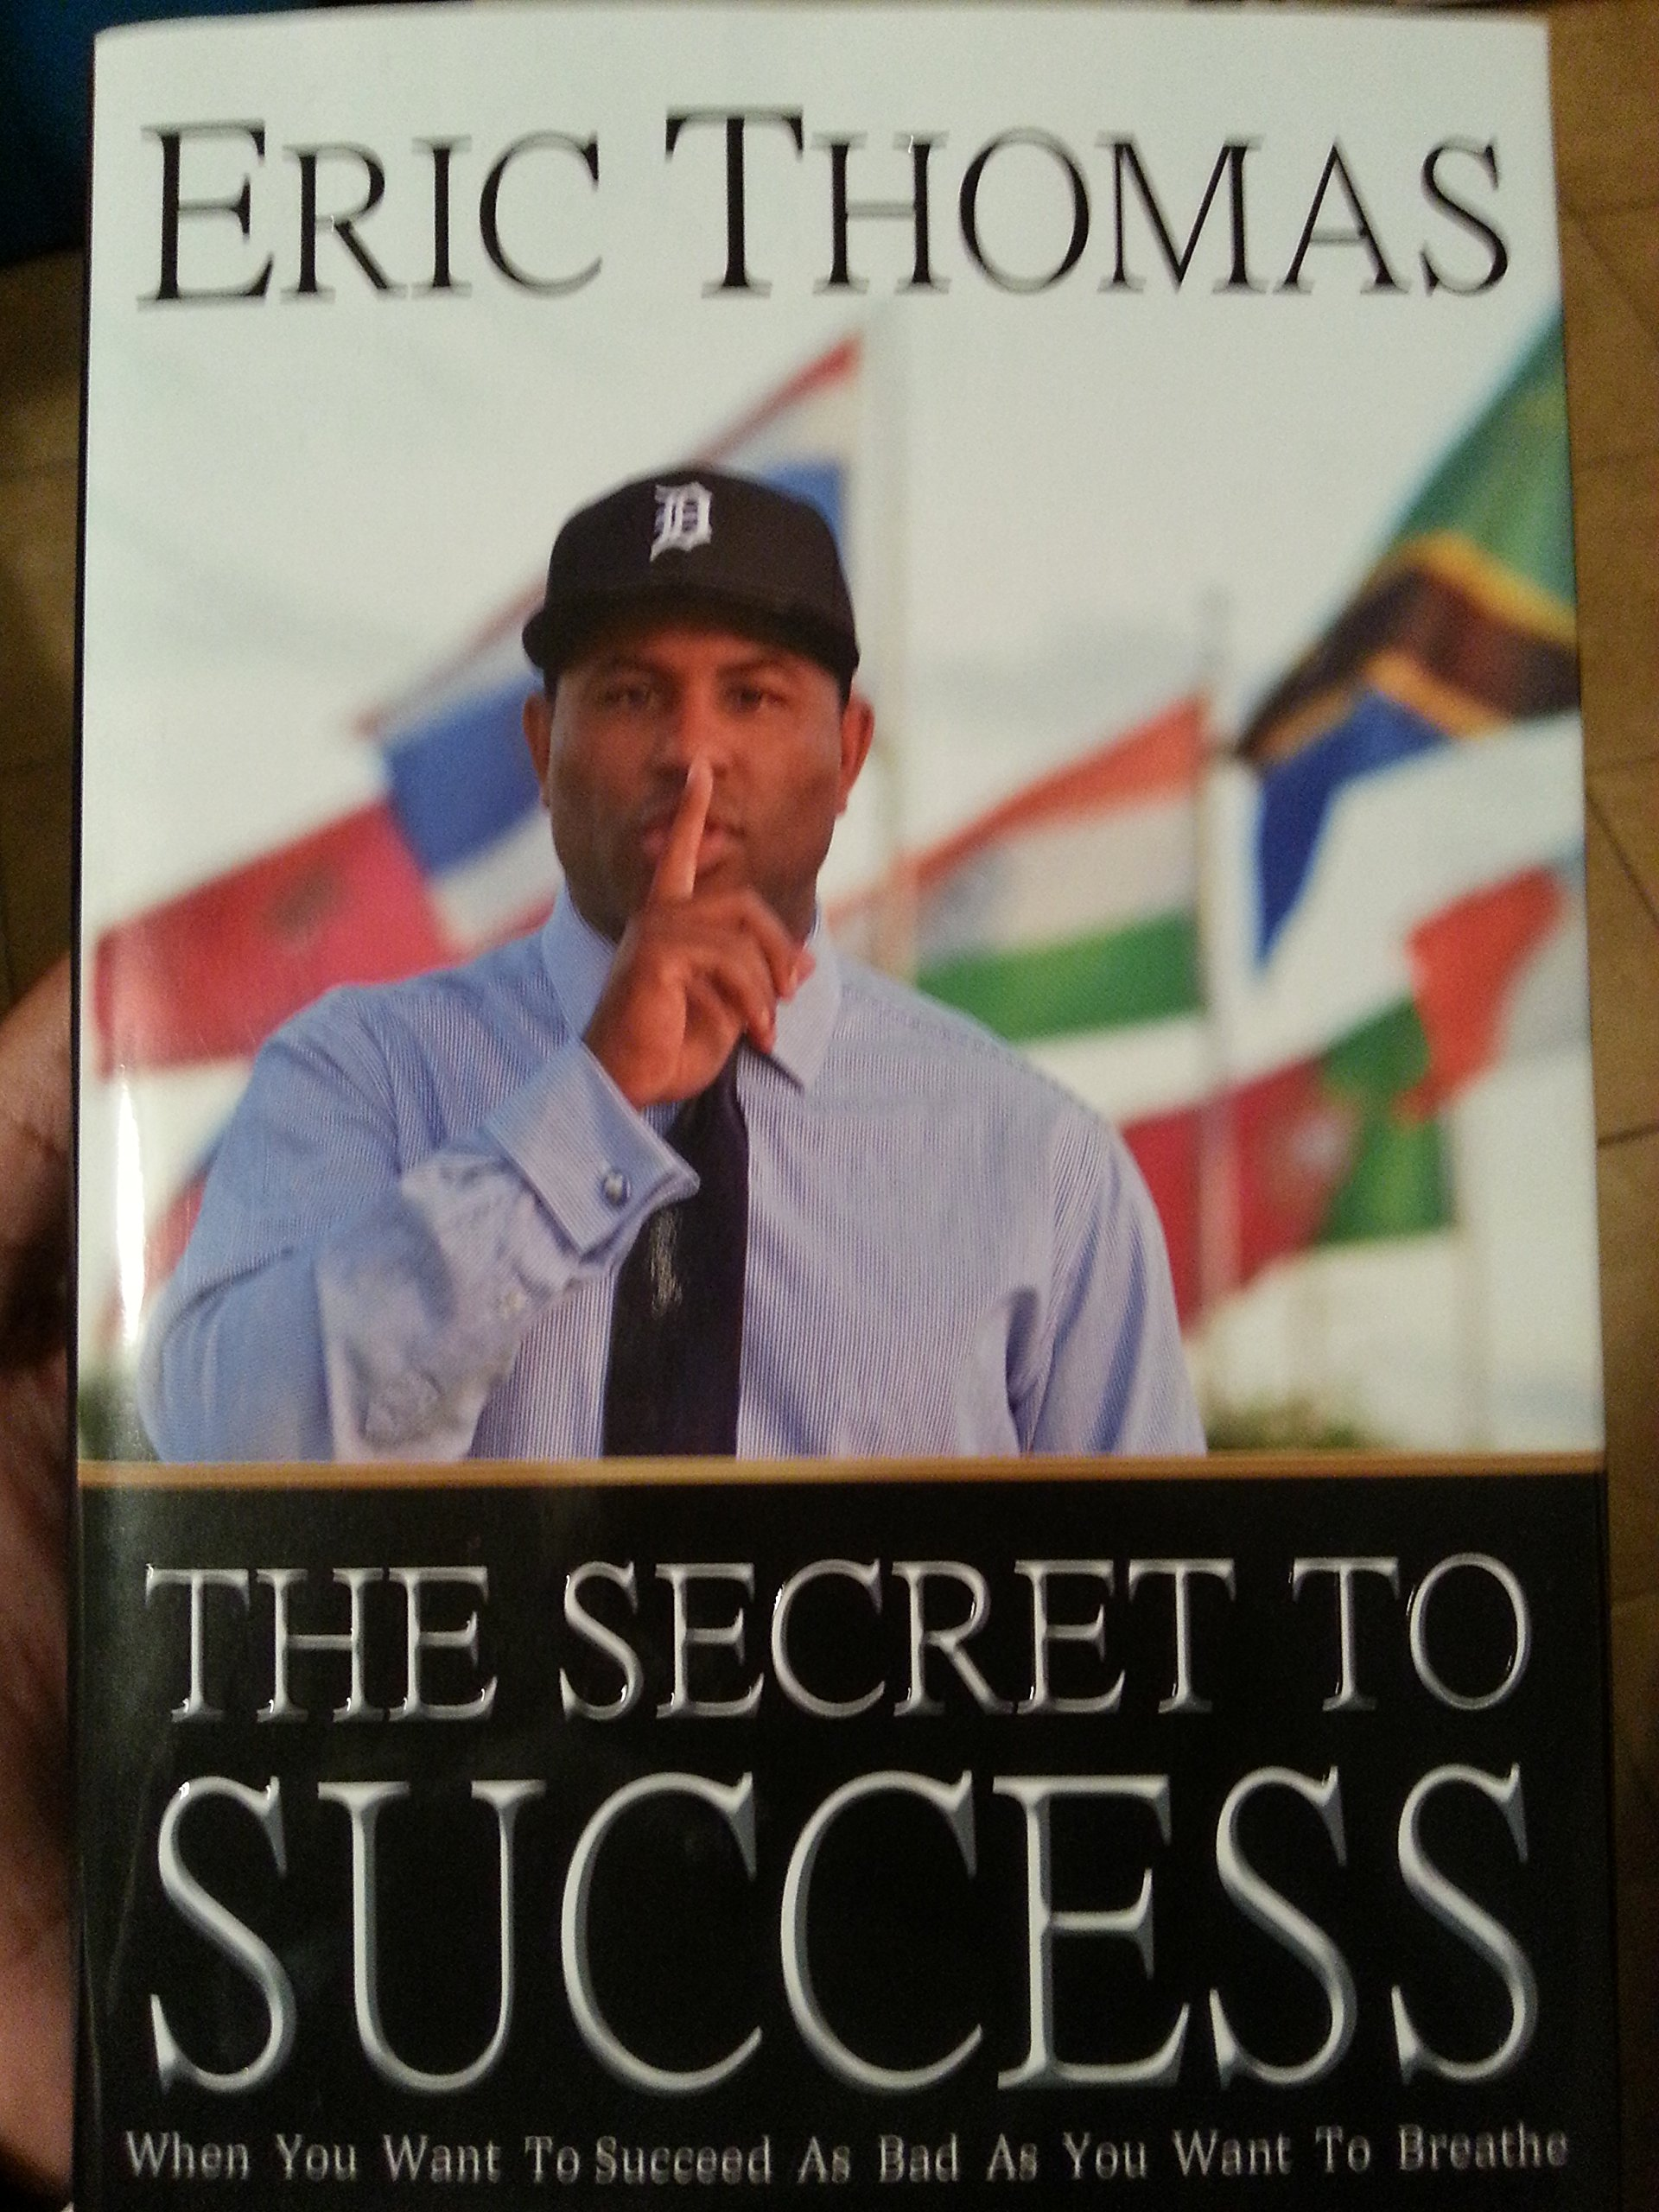 essay on the secret of success Secret of success: get the mind-set of an ant sometimes the biggest lessons in life come from the smallest folks around us all of us tend to look up to big people for lessons on how to get better.